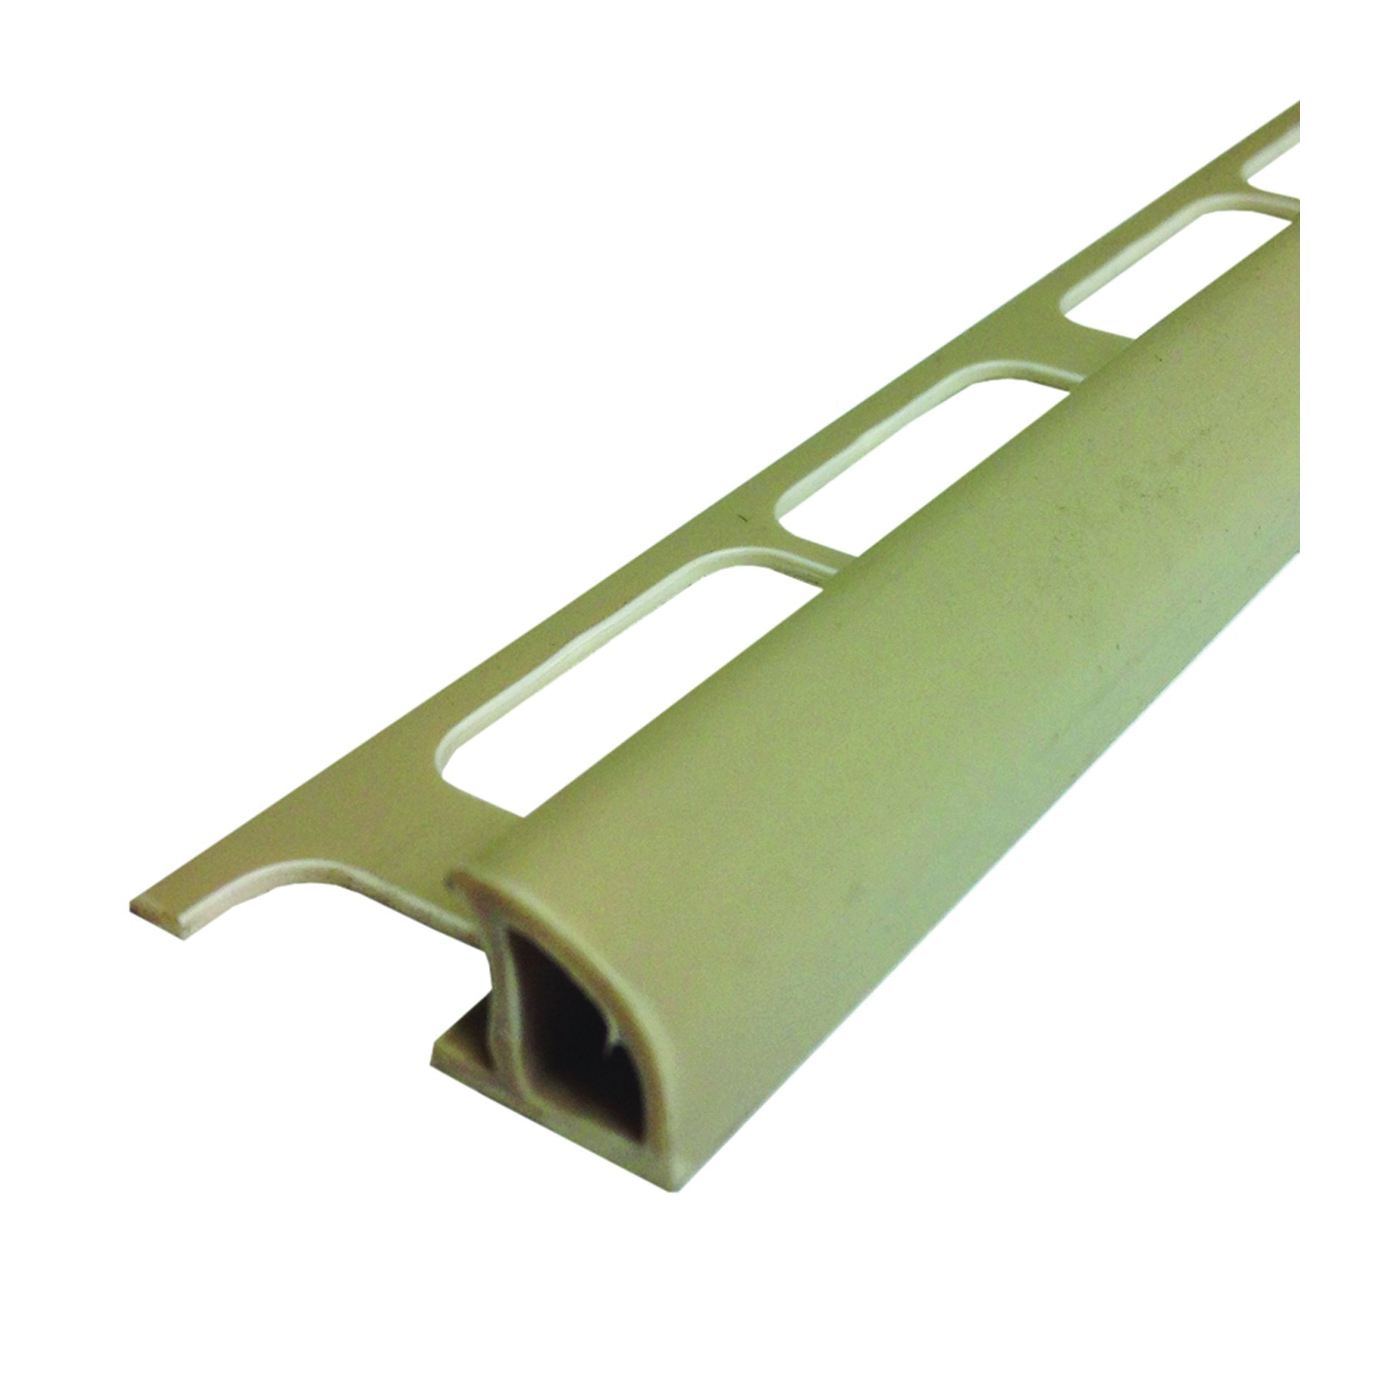 Picture of M-D 31393 Bullnose Tile Edge, 8 ft L, 1-3/8 in W, PVC, Beige